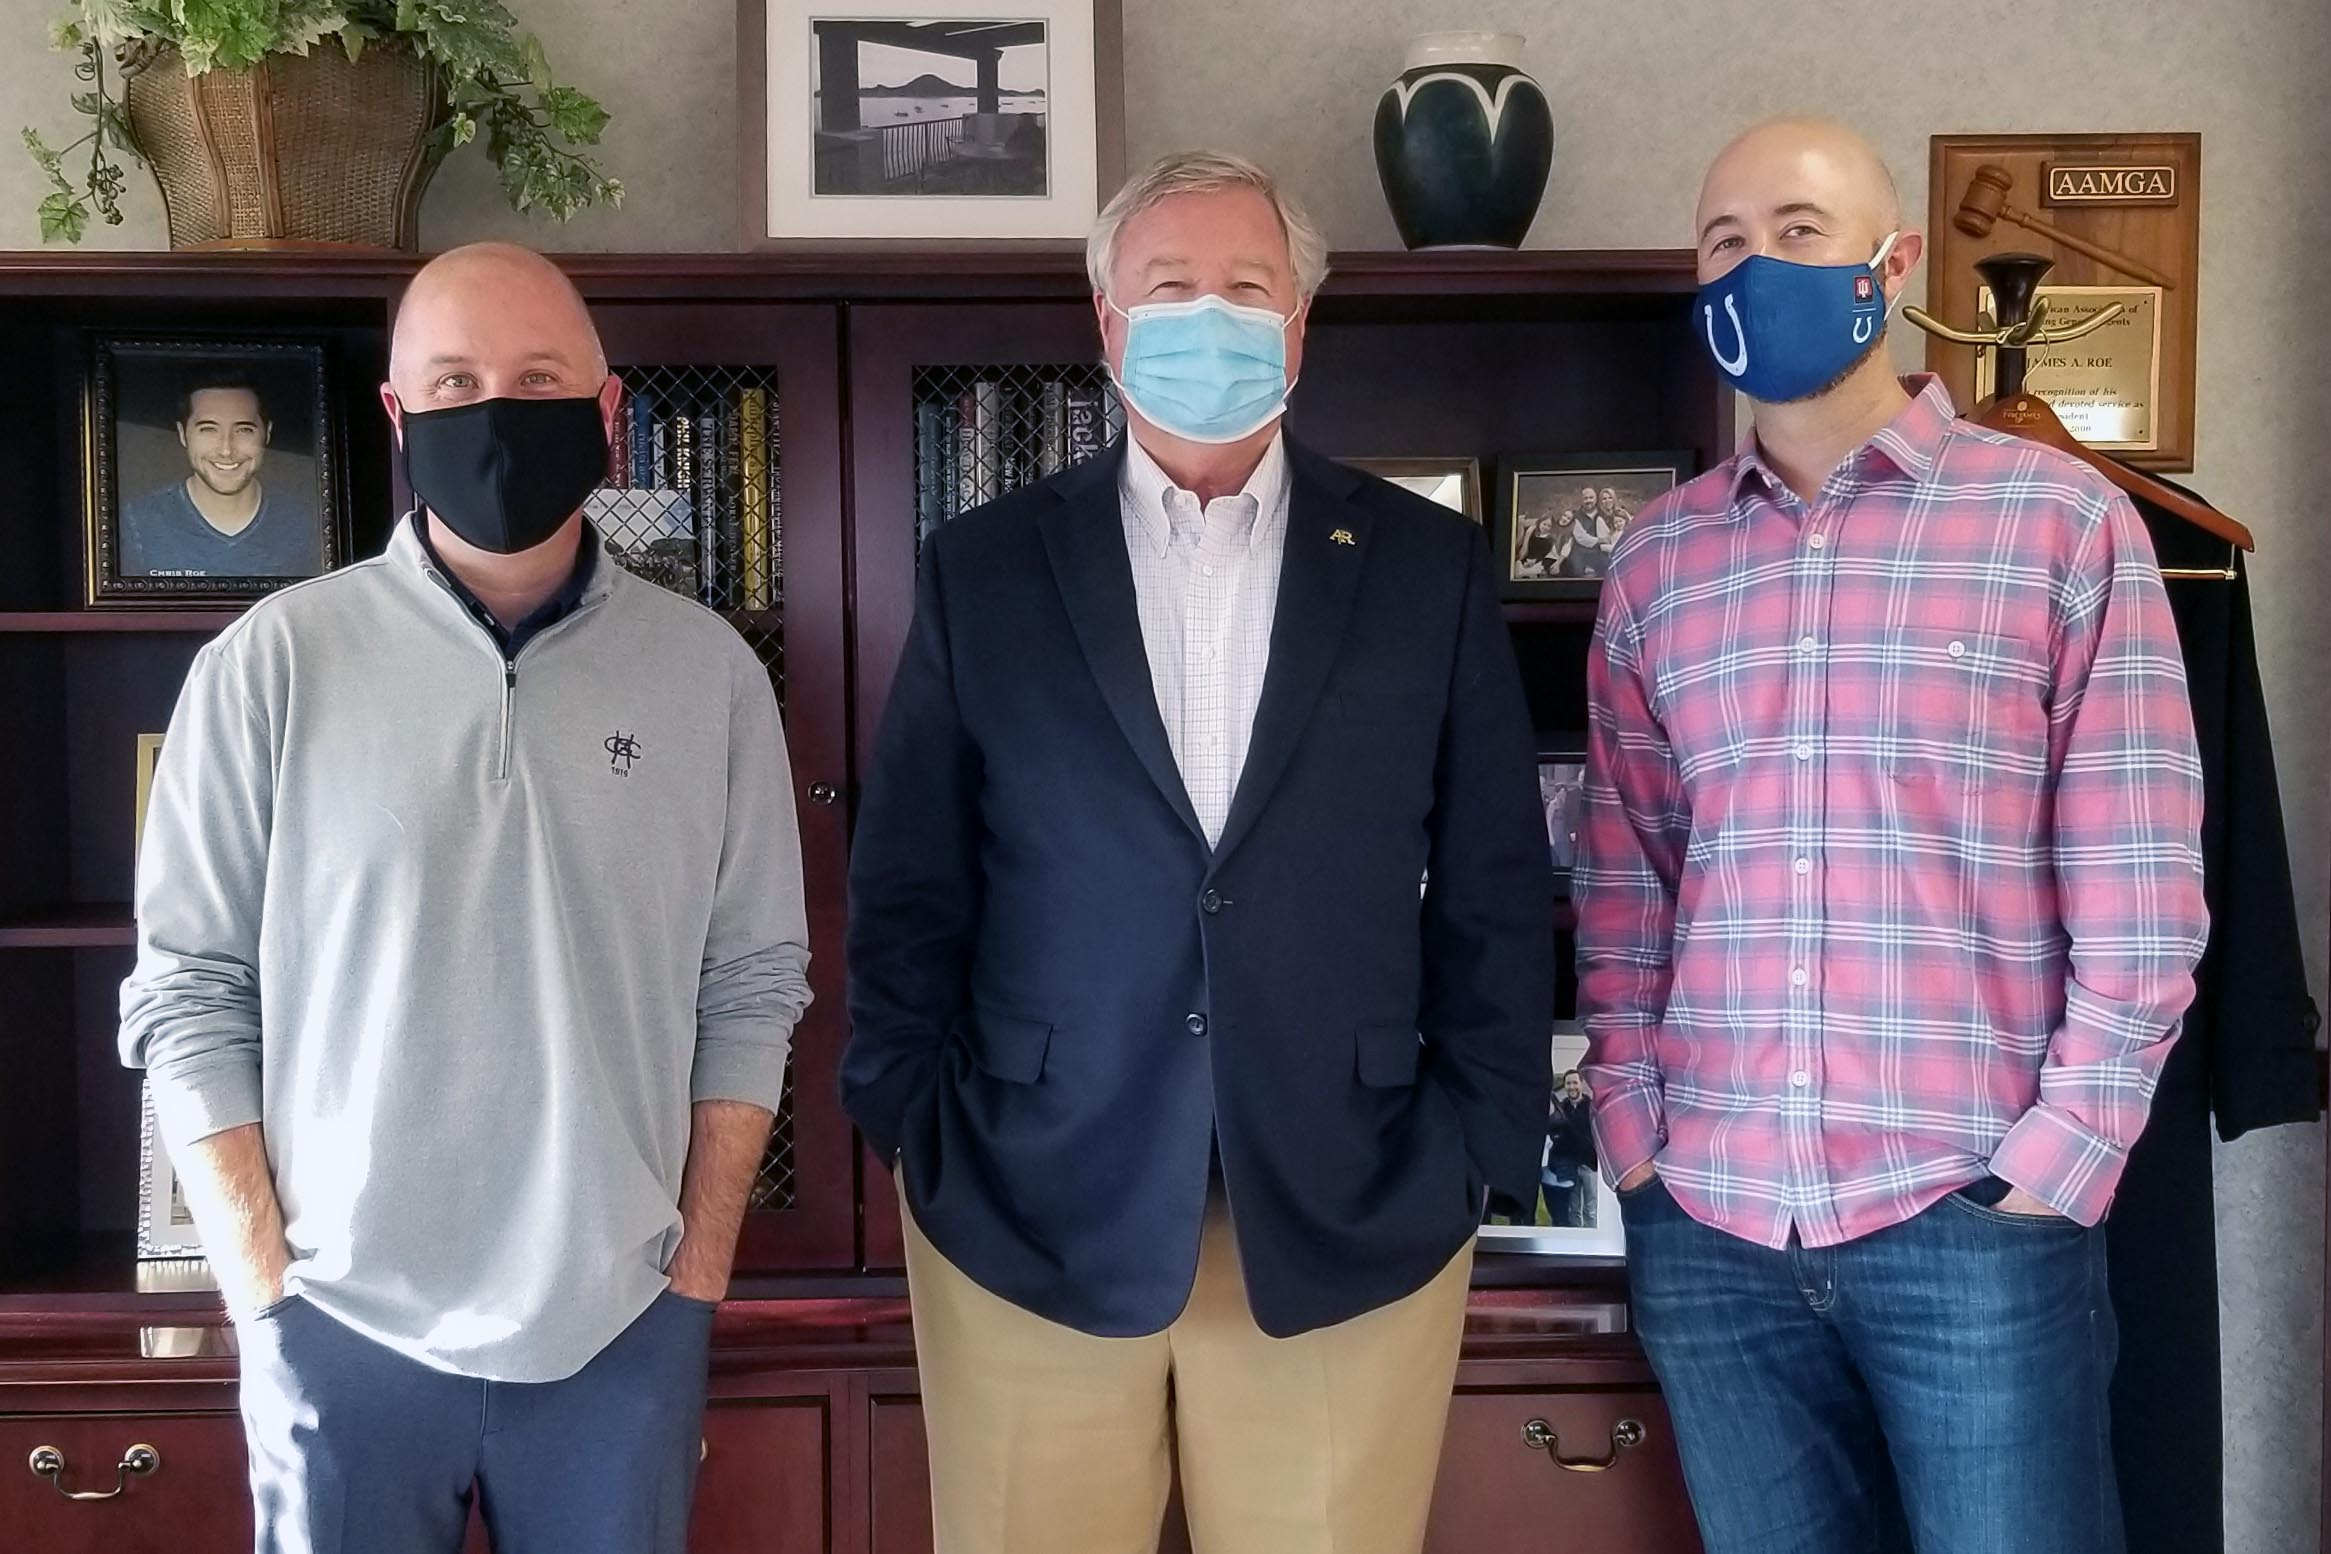 image of three Roes with masks on smiling at the camera